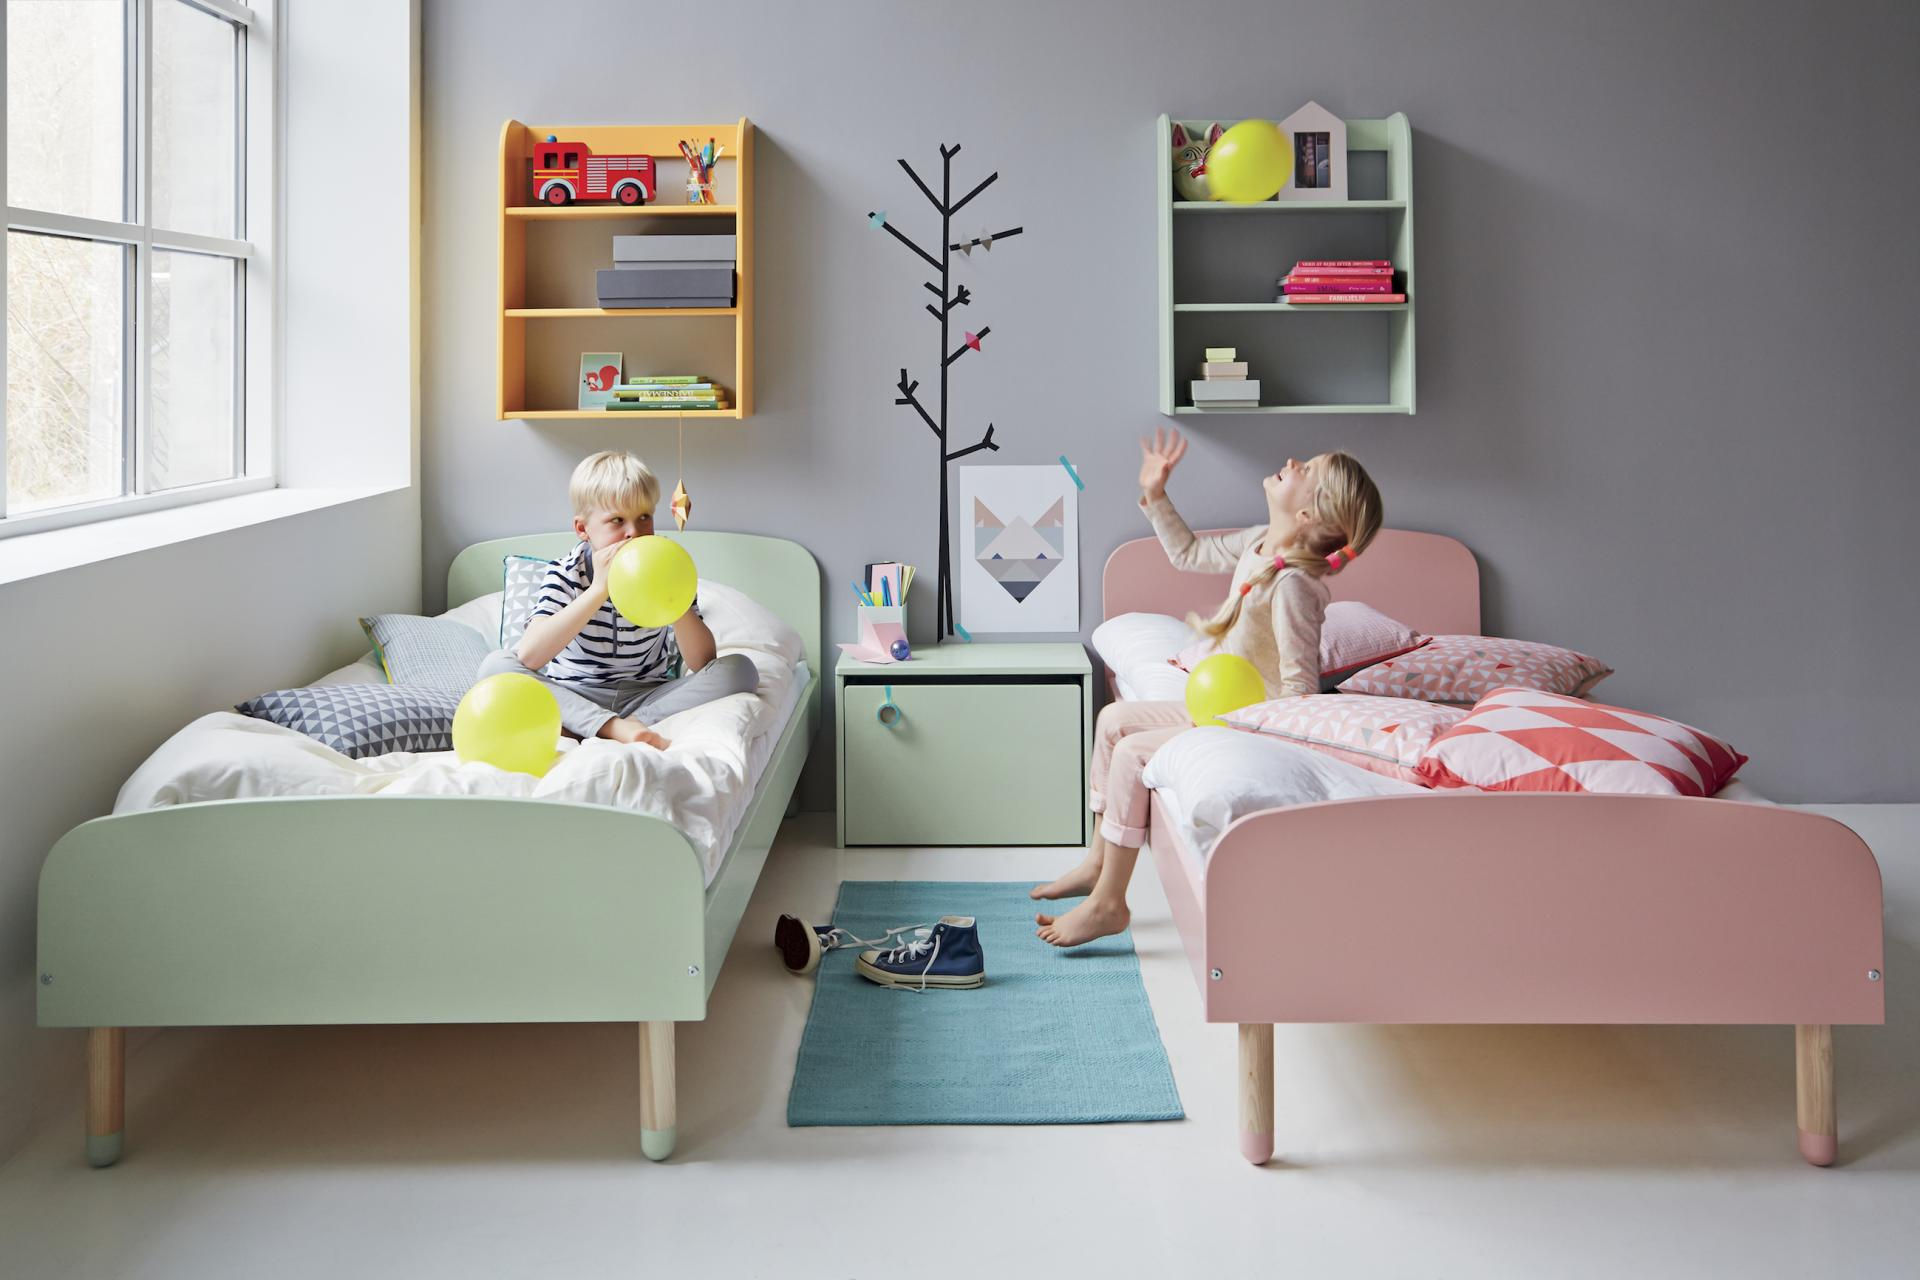 chambre d 39 enfant ambiance nordique. Black Bedroom Furniture Sets. Home Design Ideas